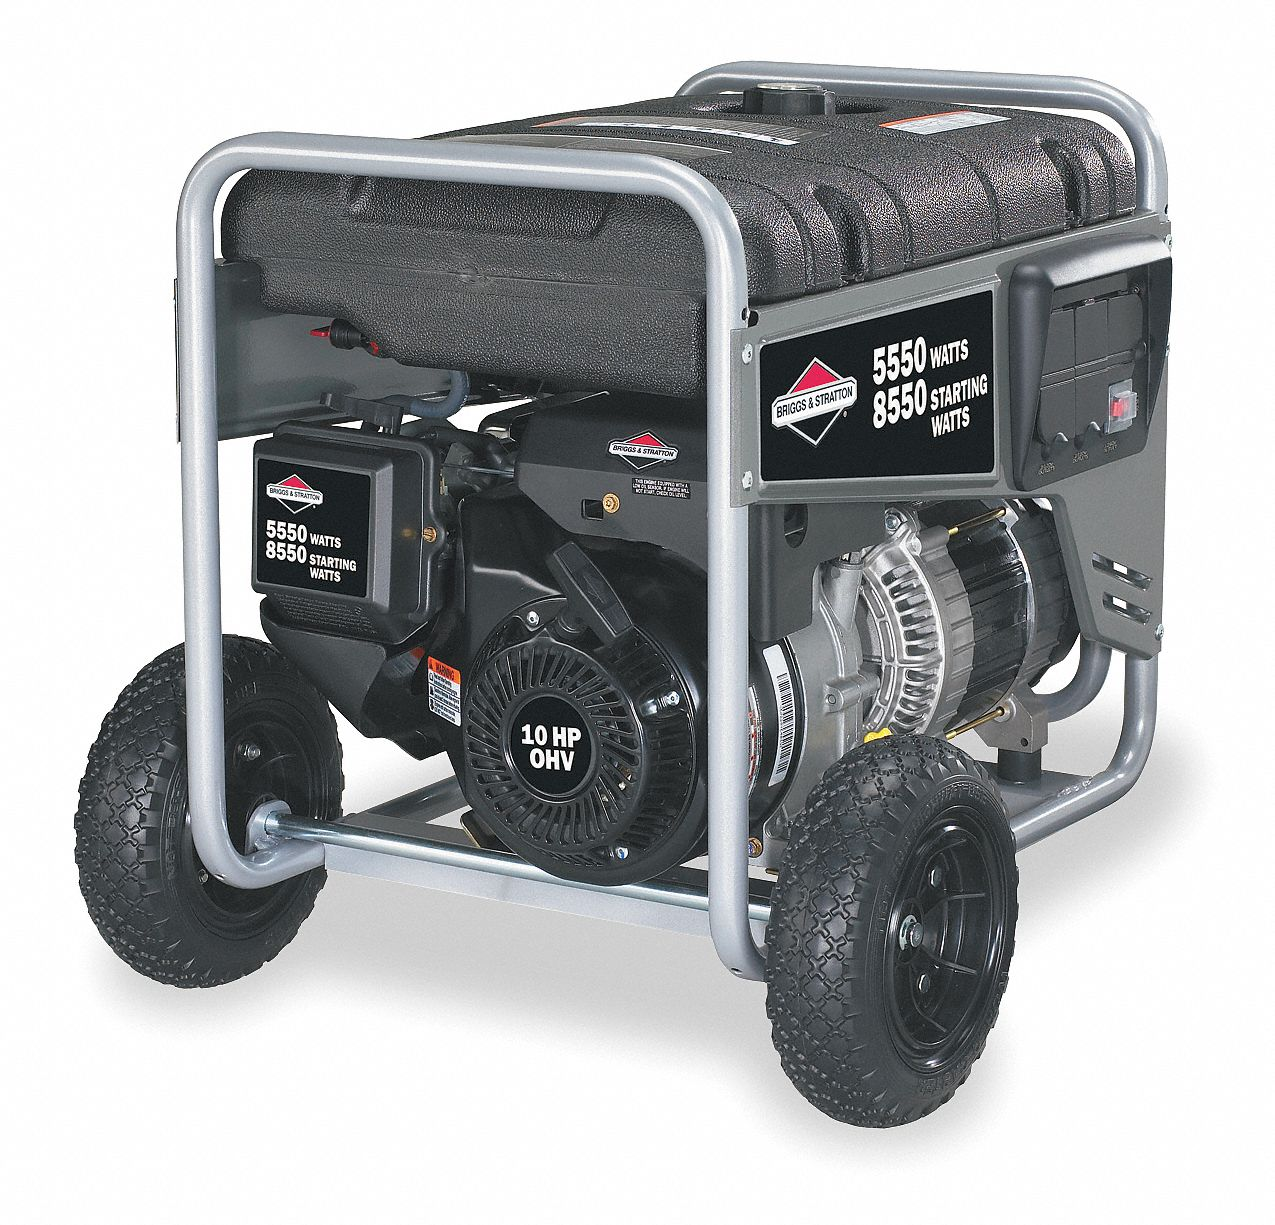 briggs stratton recoil gasoline portable generator 5550 rated rh grainger com briggs and stratton 5500 watt generator parts briggs and stratton storm responder 5500 watt generator manual